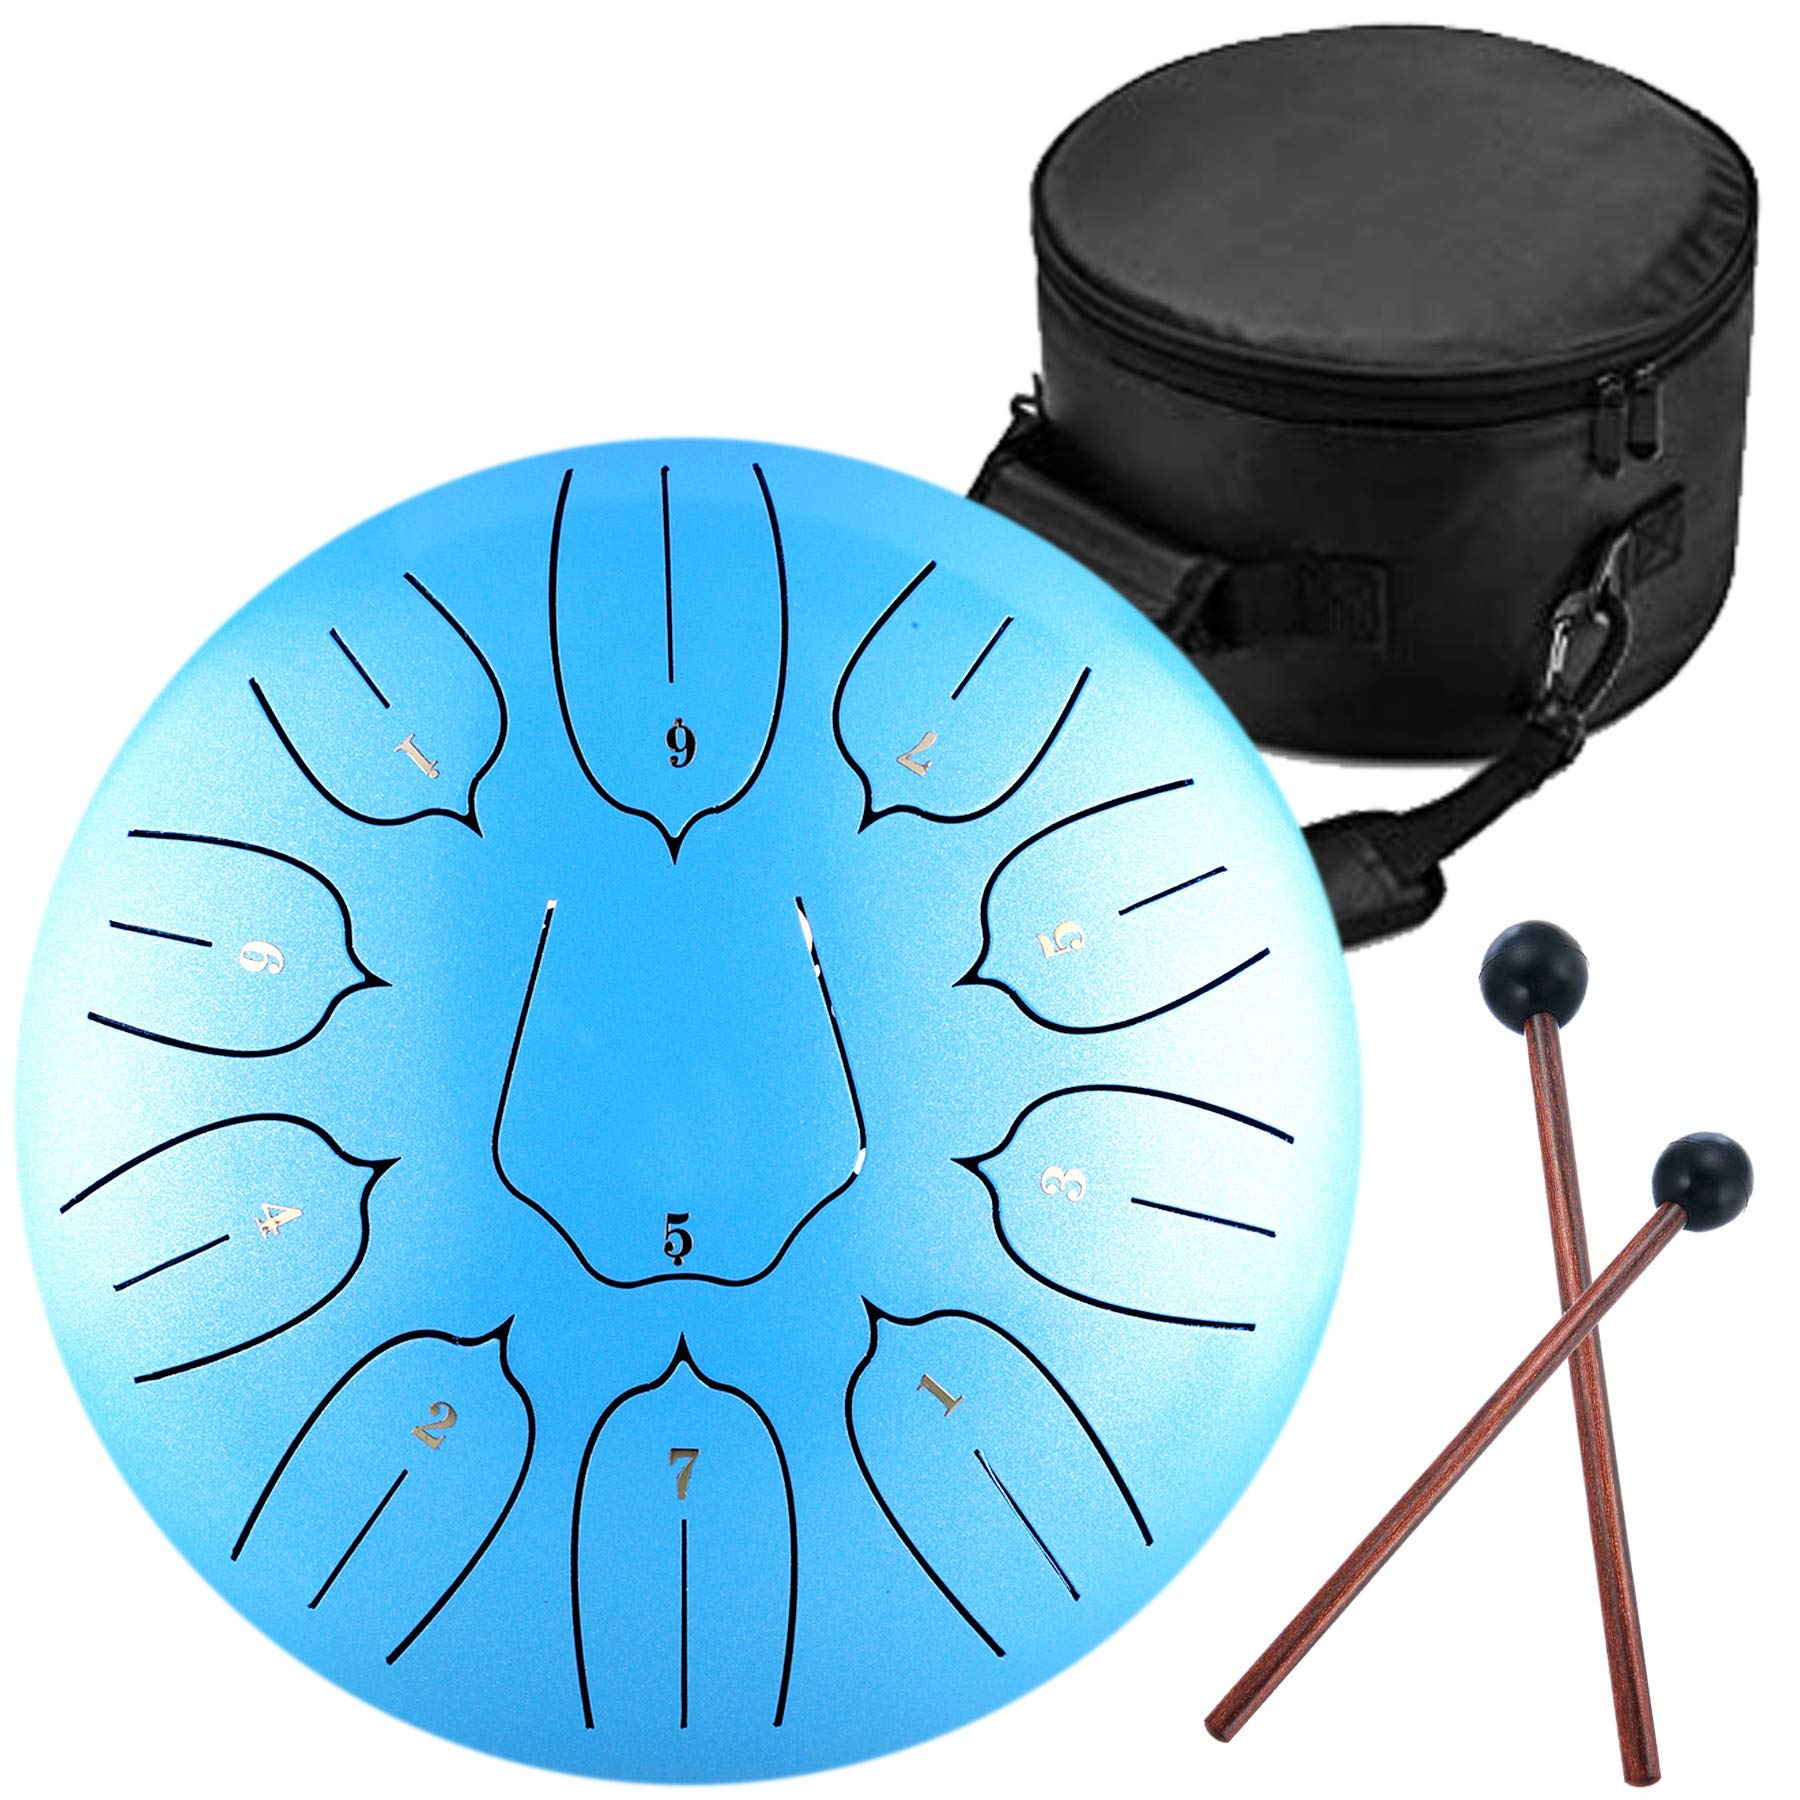 Lotus Handpan Tongue Drum 11 Notes 10 Inches Chakra Tank Drum Steel Percussion Hang Drum Instrument with Padded Travel Bag and Mallets Blue